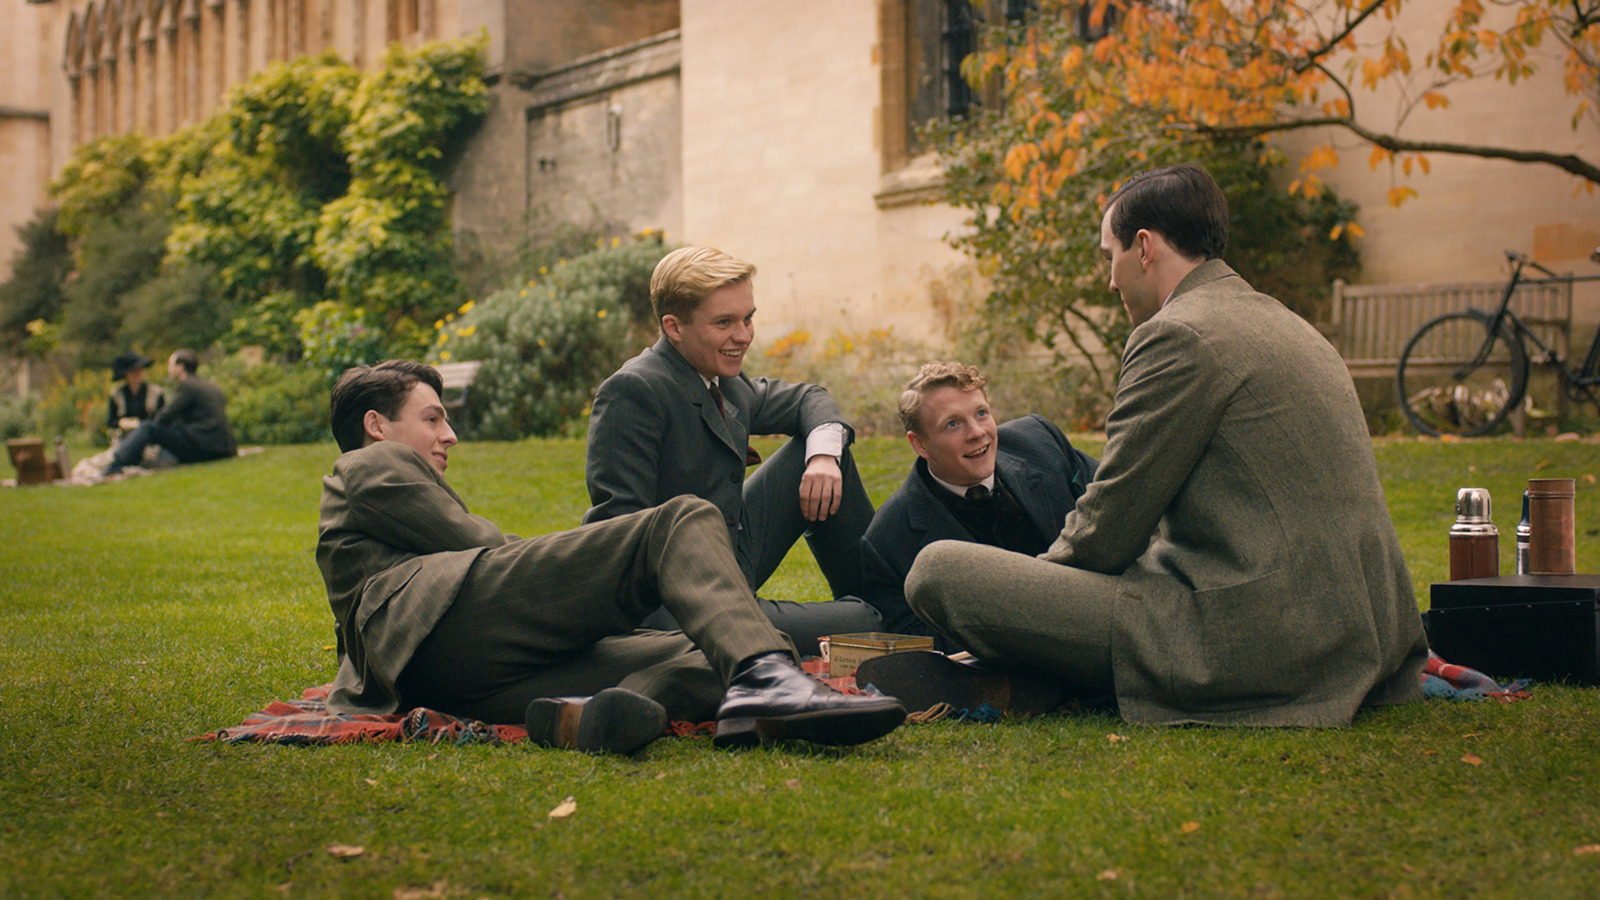 Nicholas Hoult, Patrick Gibson, Anthony Boyle, and Tom Glynn-Carney in Tolkien (2019)